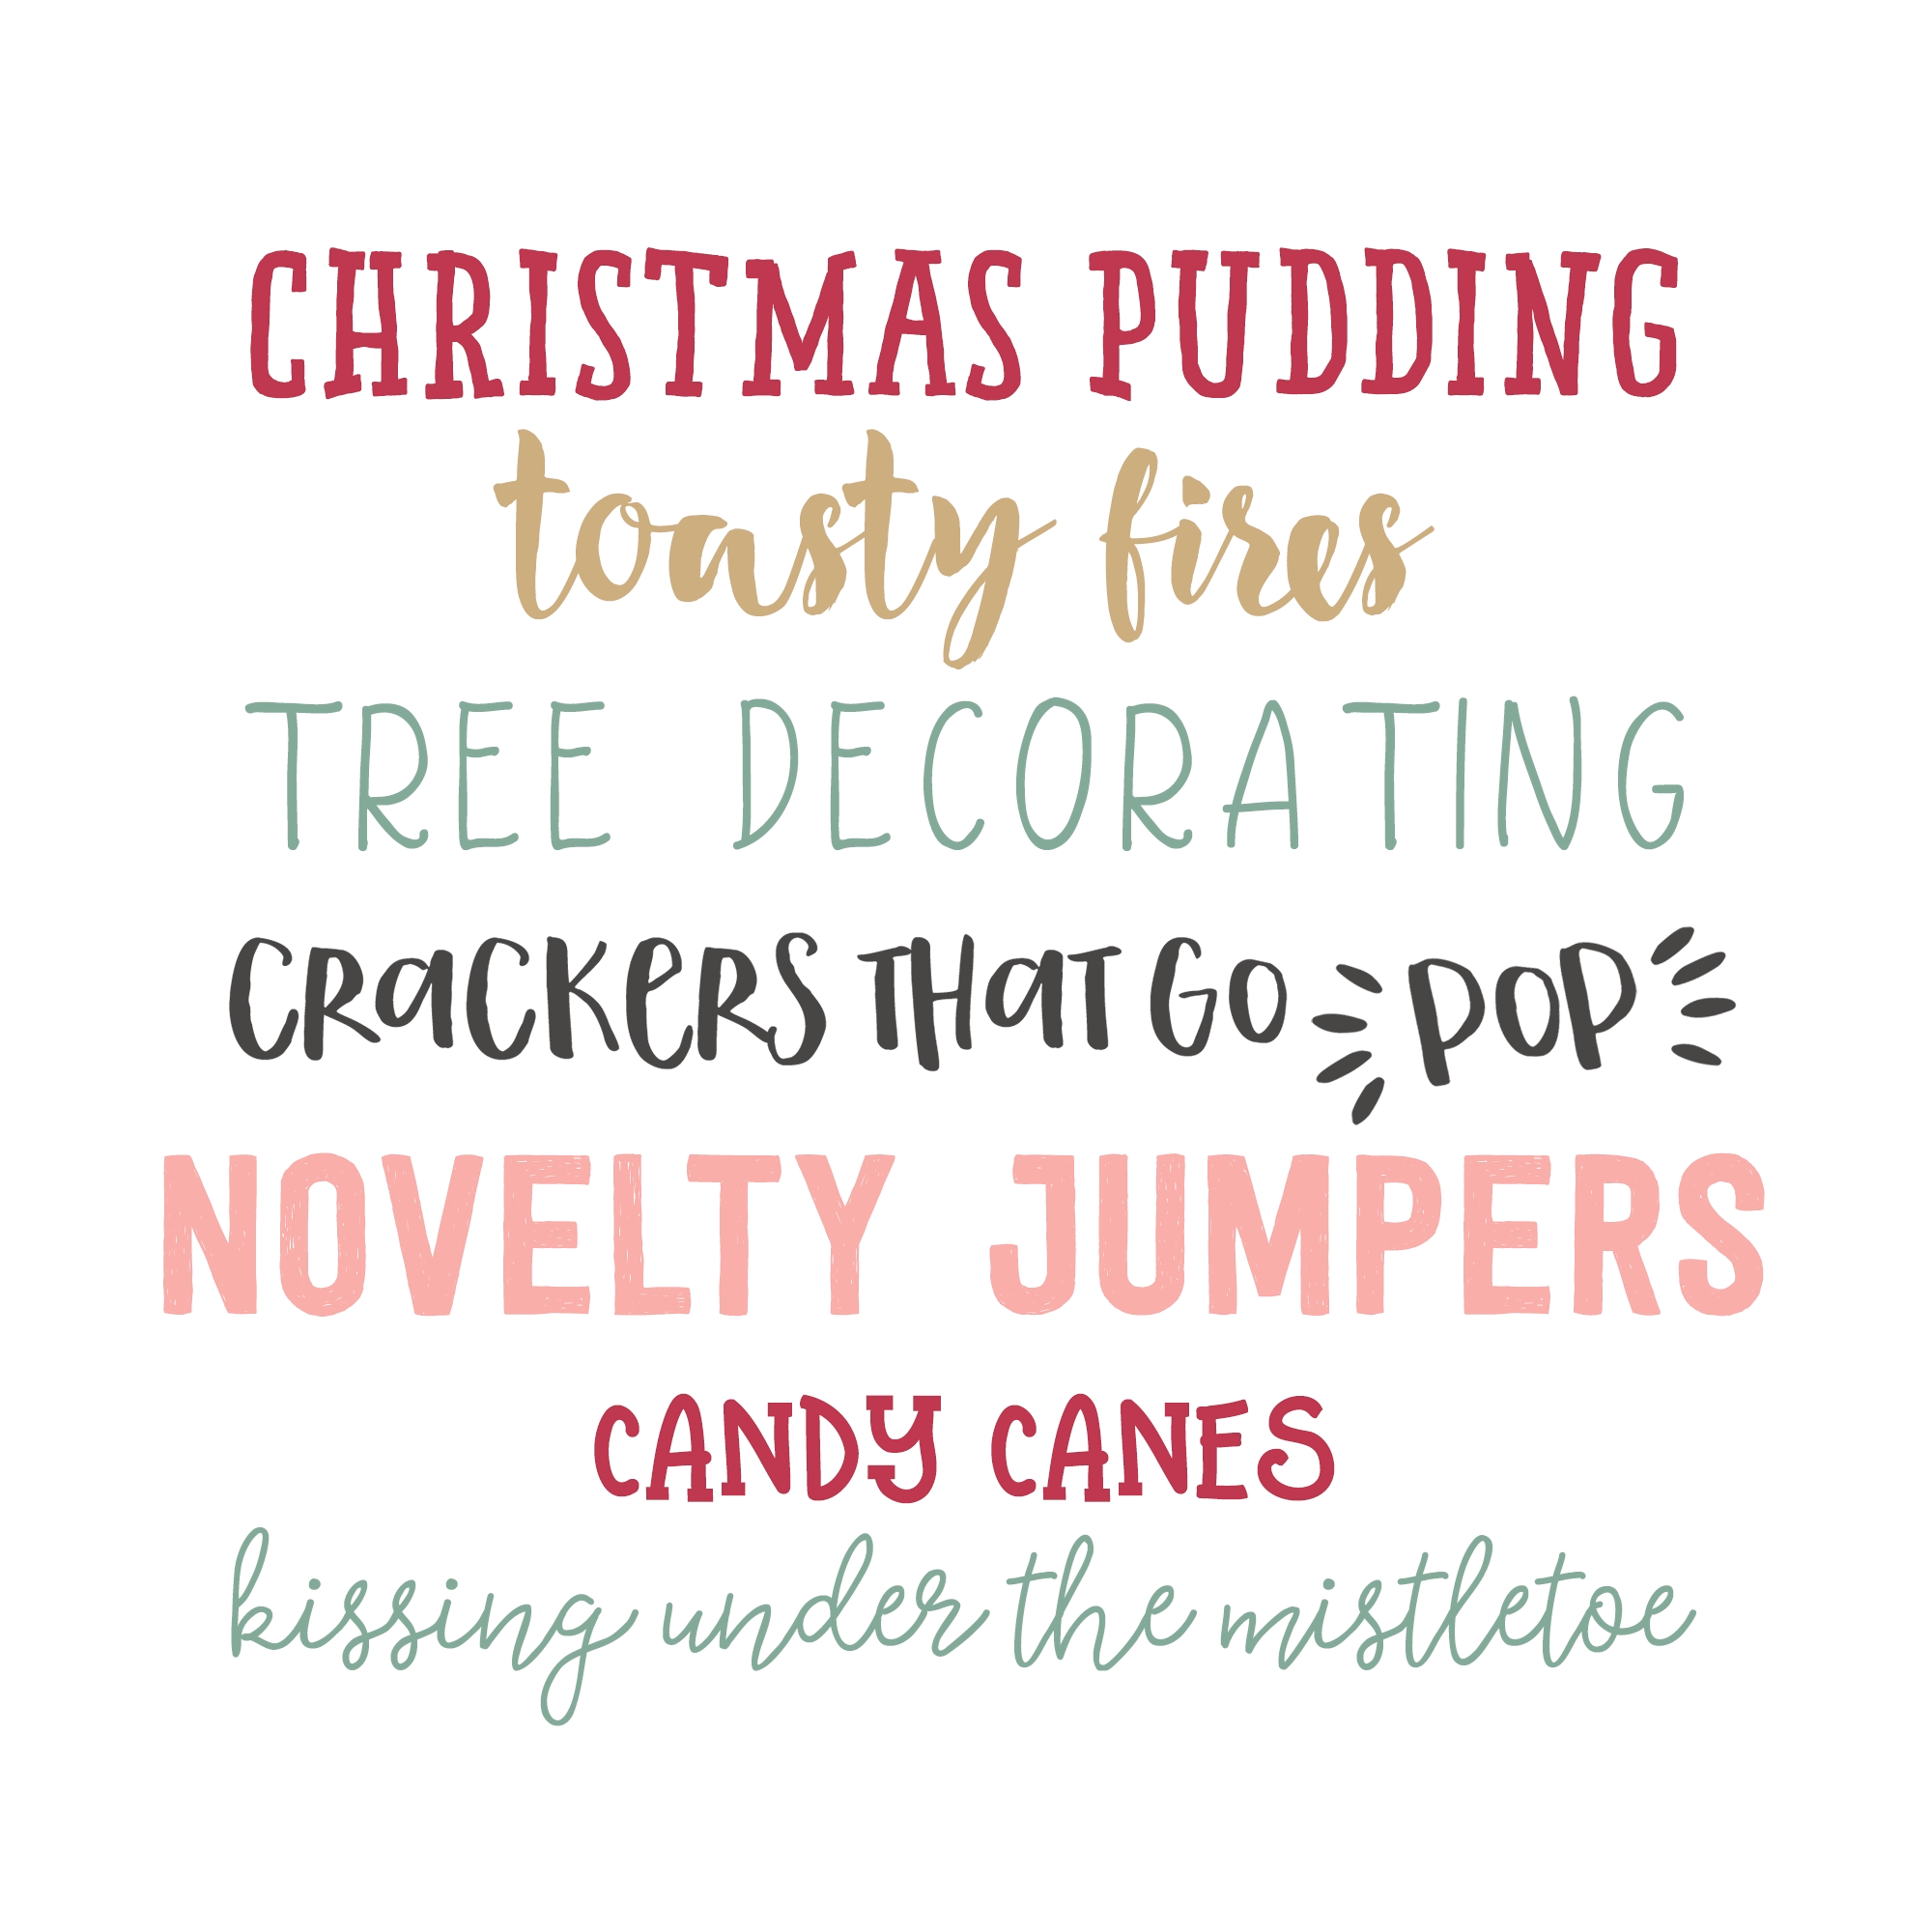 50 Of The Best Holiday Jokes For Kids Green Family Blog 2020 Video Video Christmas Quotes Funny Christmas Jokes Mom Boss Quotes